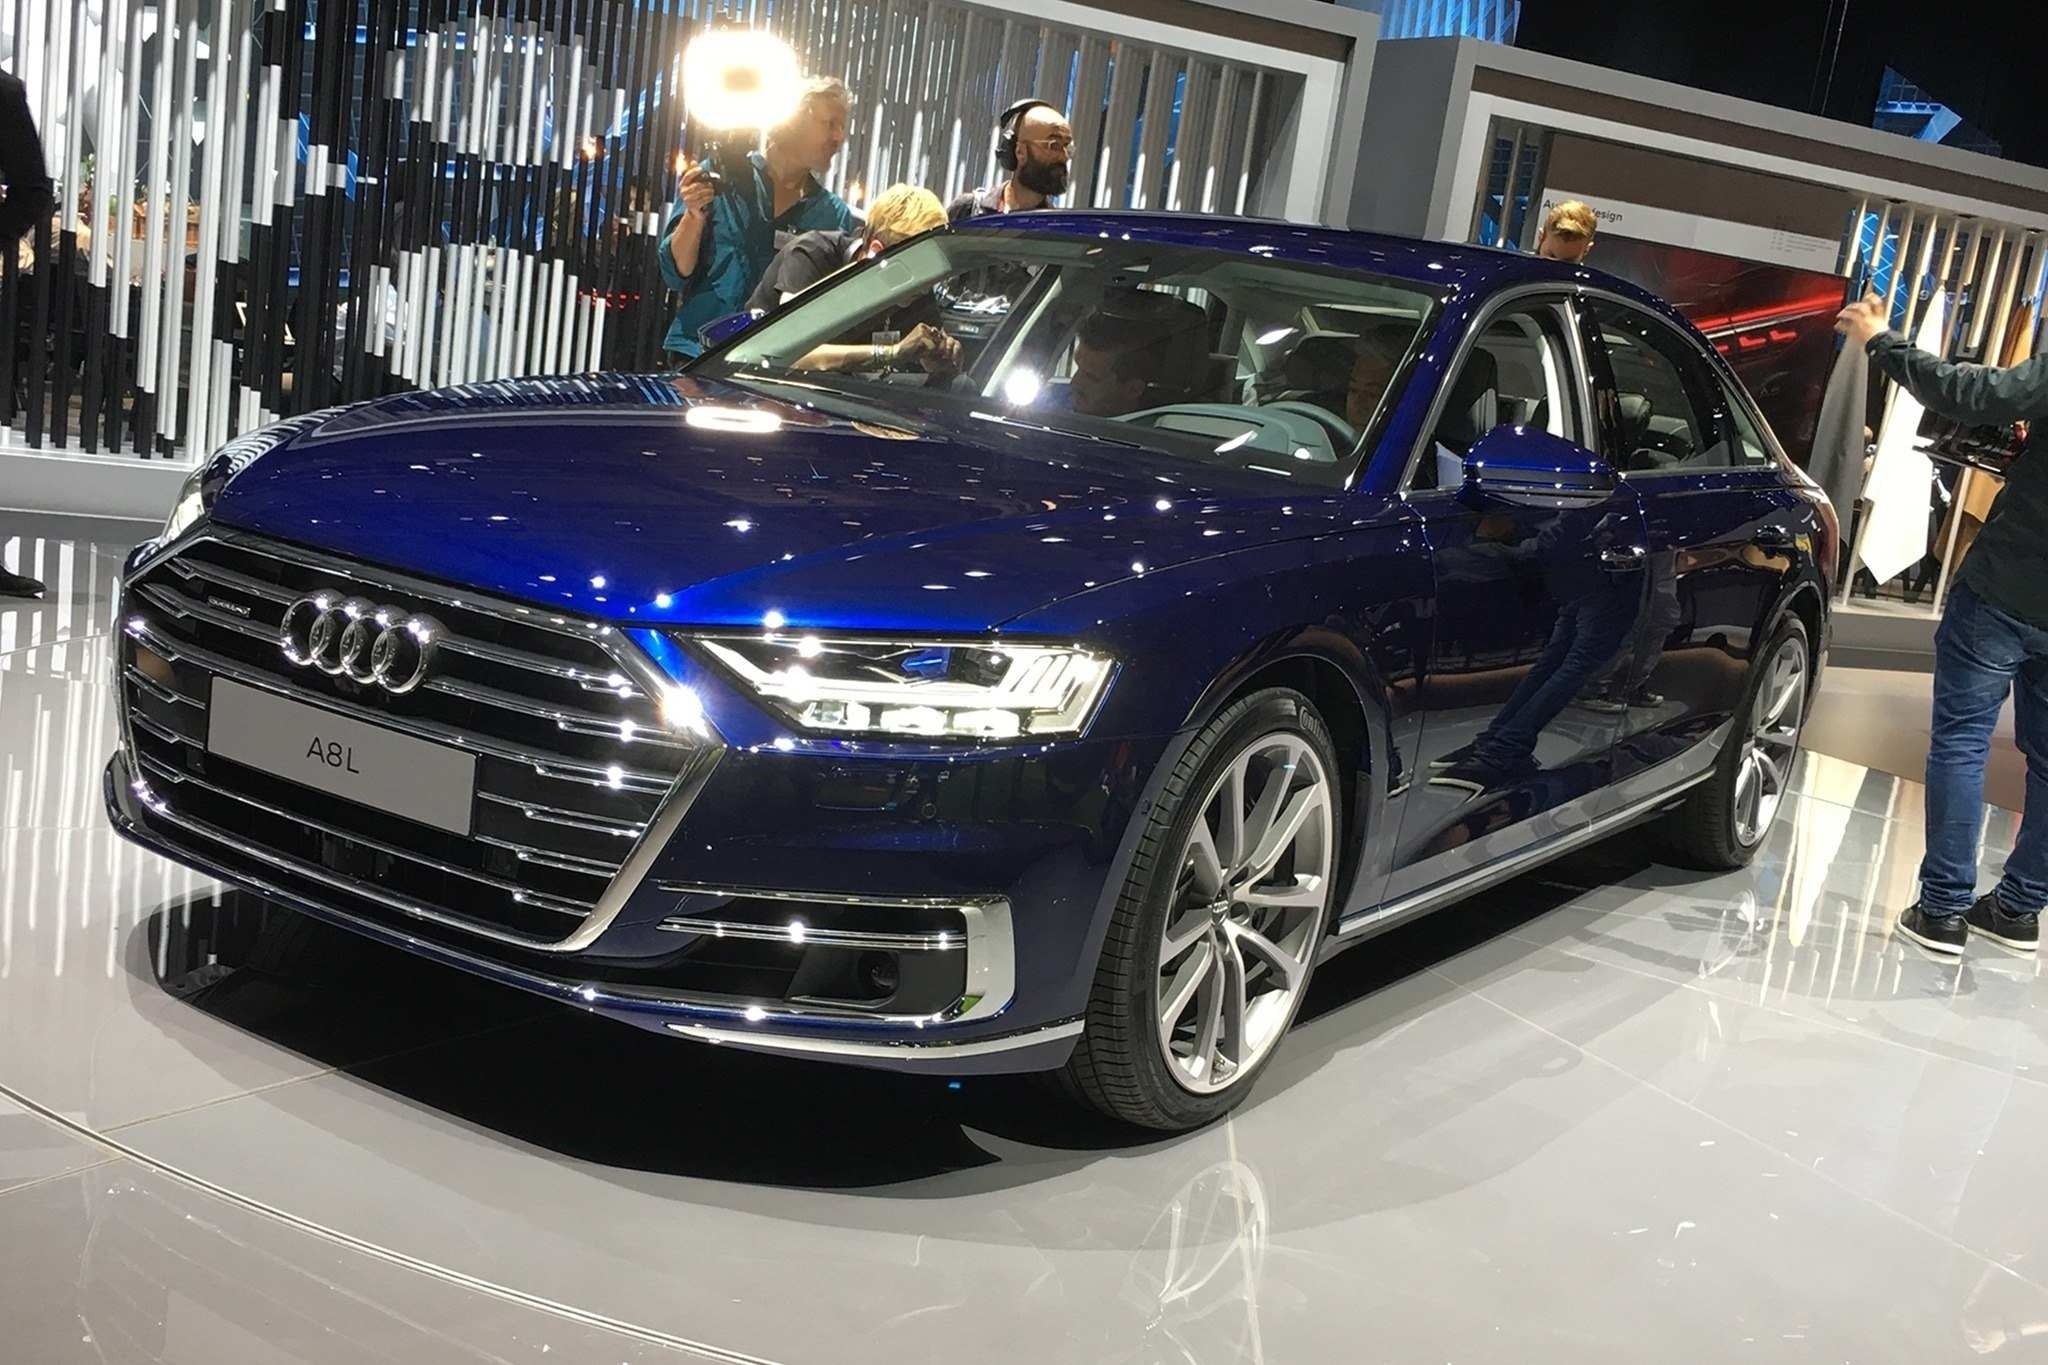 49 The 2019 Audi A8 L In Usa Specs